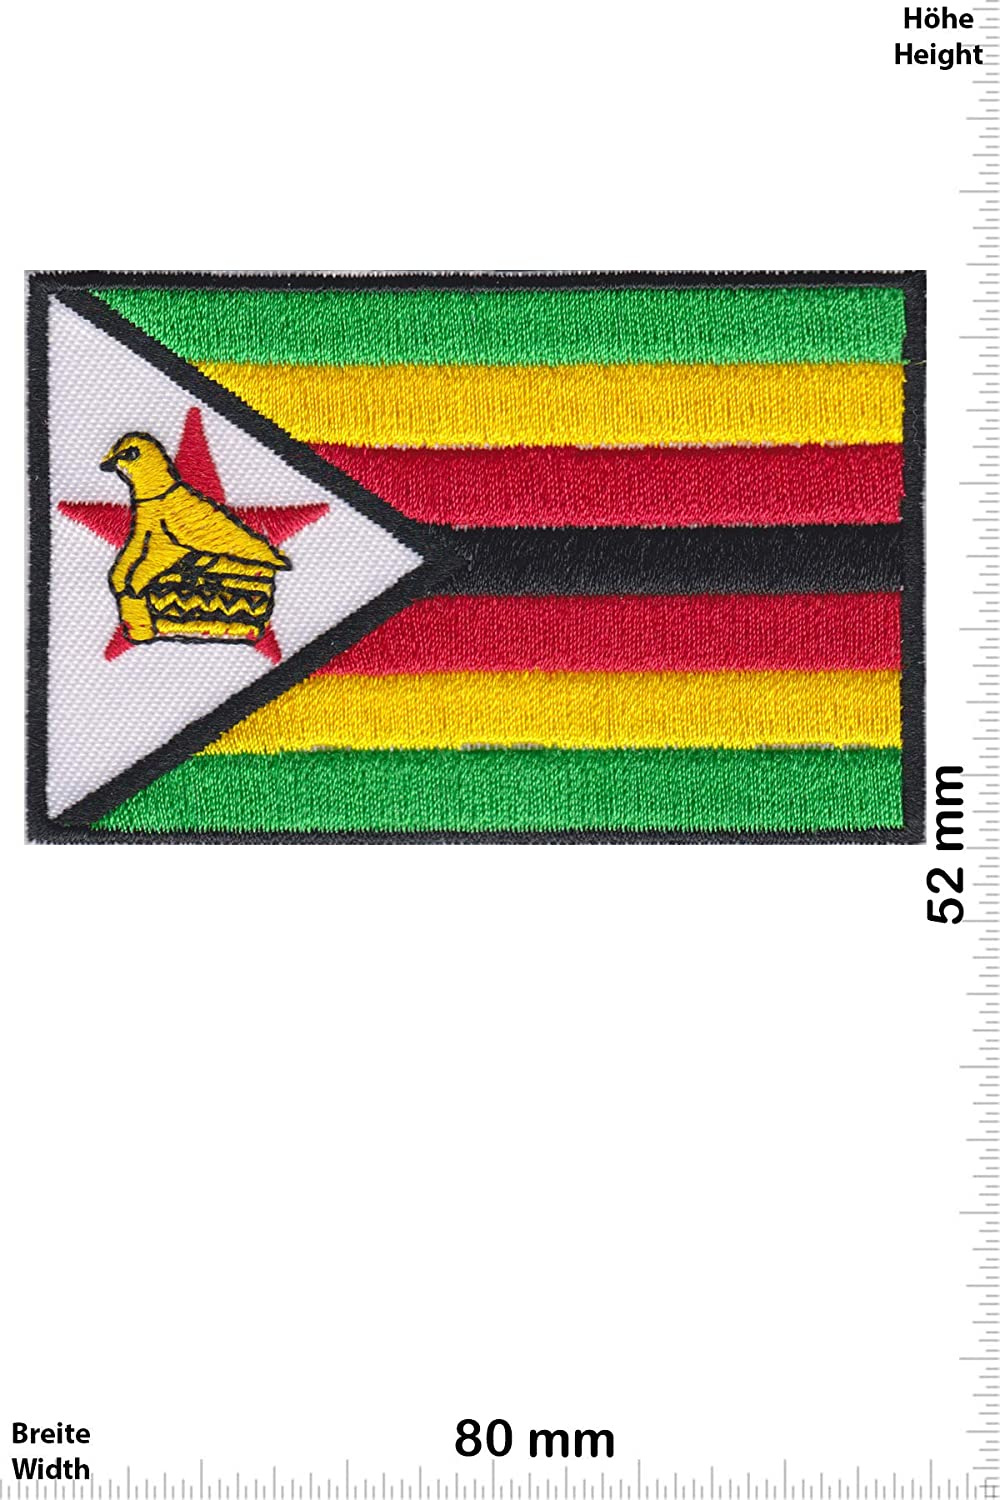 Patch - Simbabwe - Zimbabwe - Flag -Pays -Mix -Zimbabwe - Iron on Applique Embroidery Écusson brodé Costume Cadeau- Give